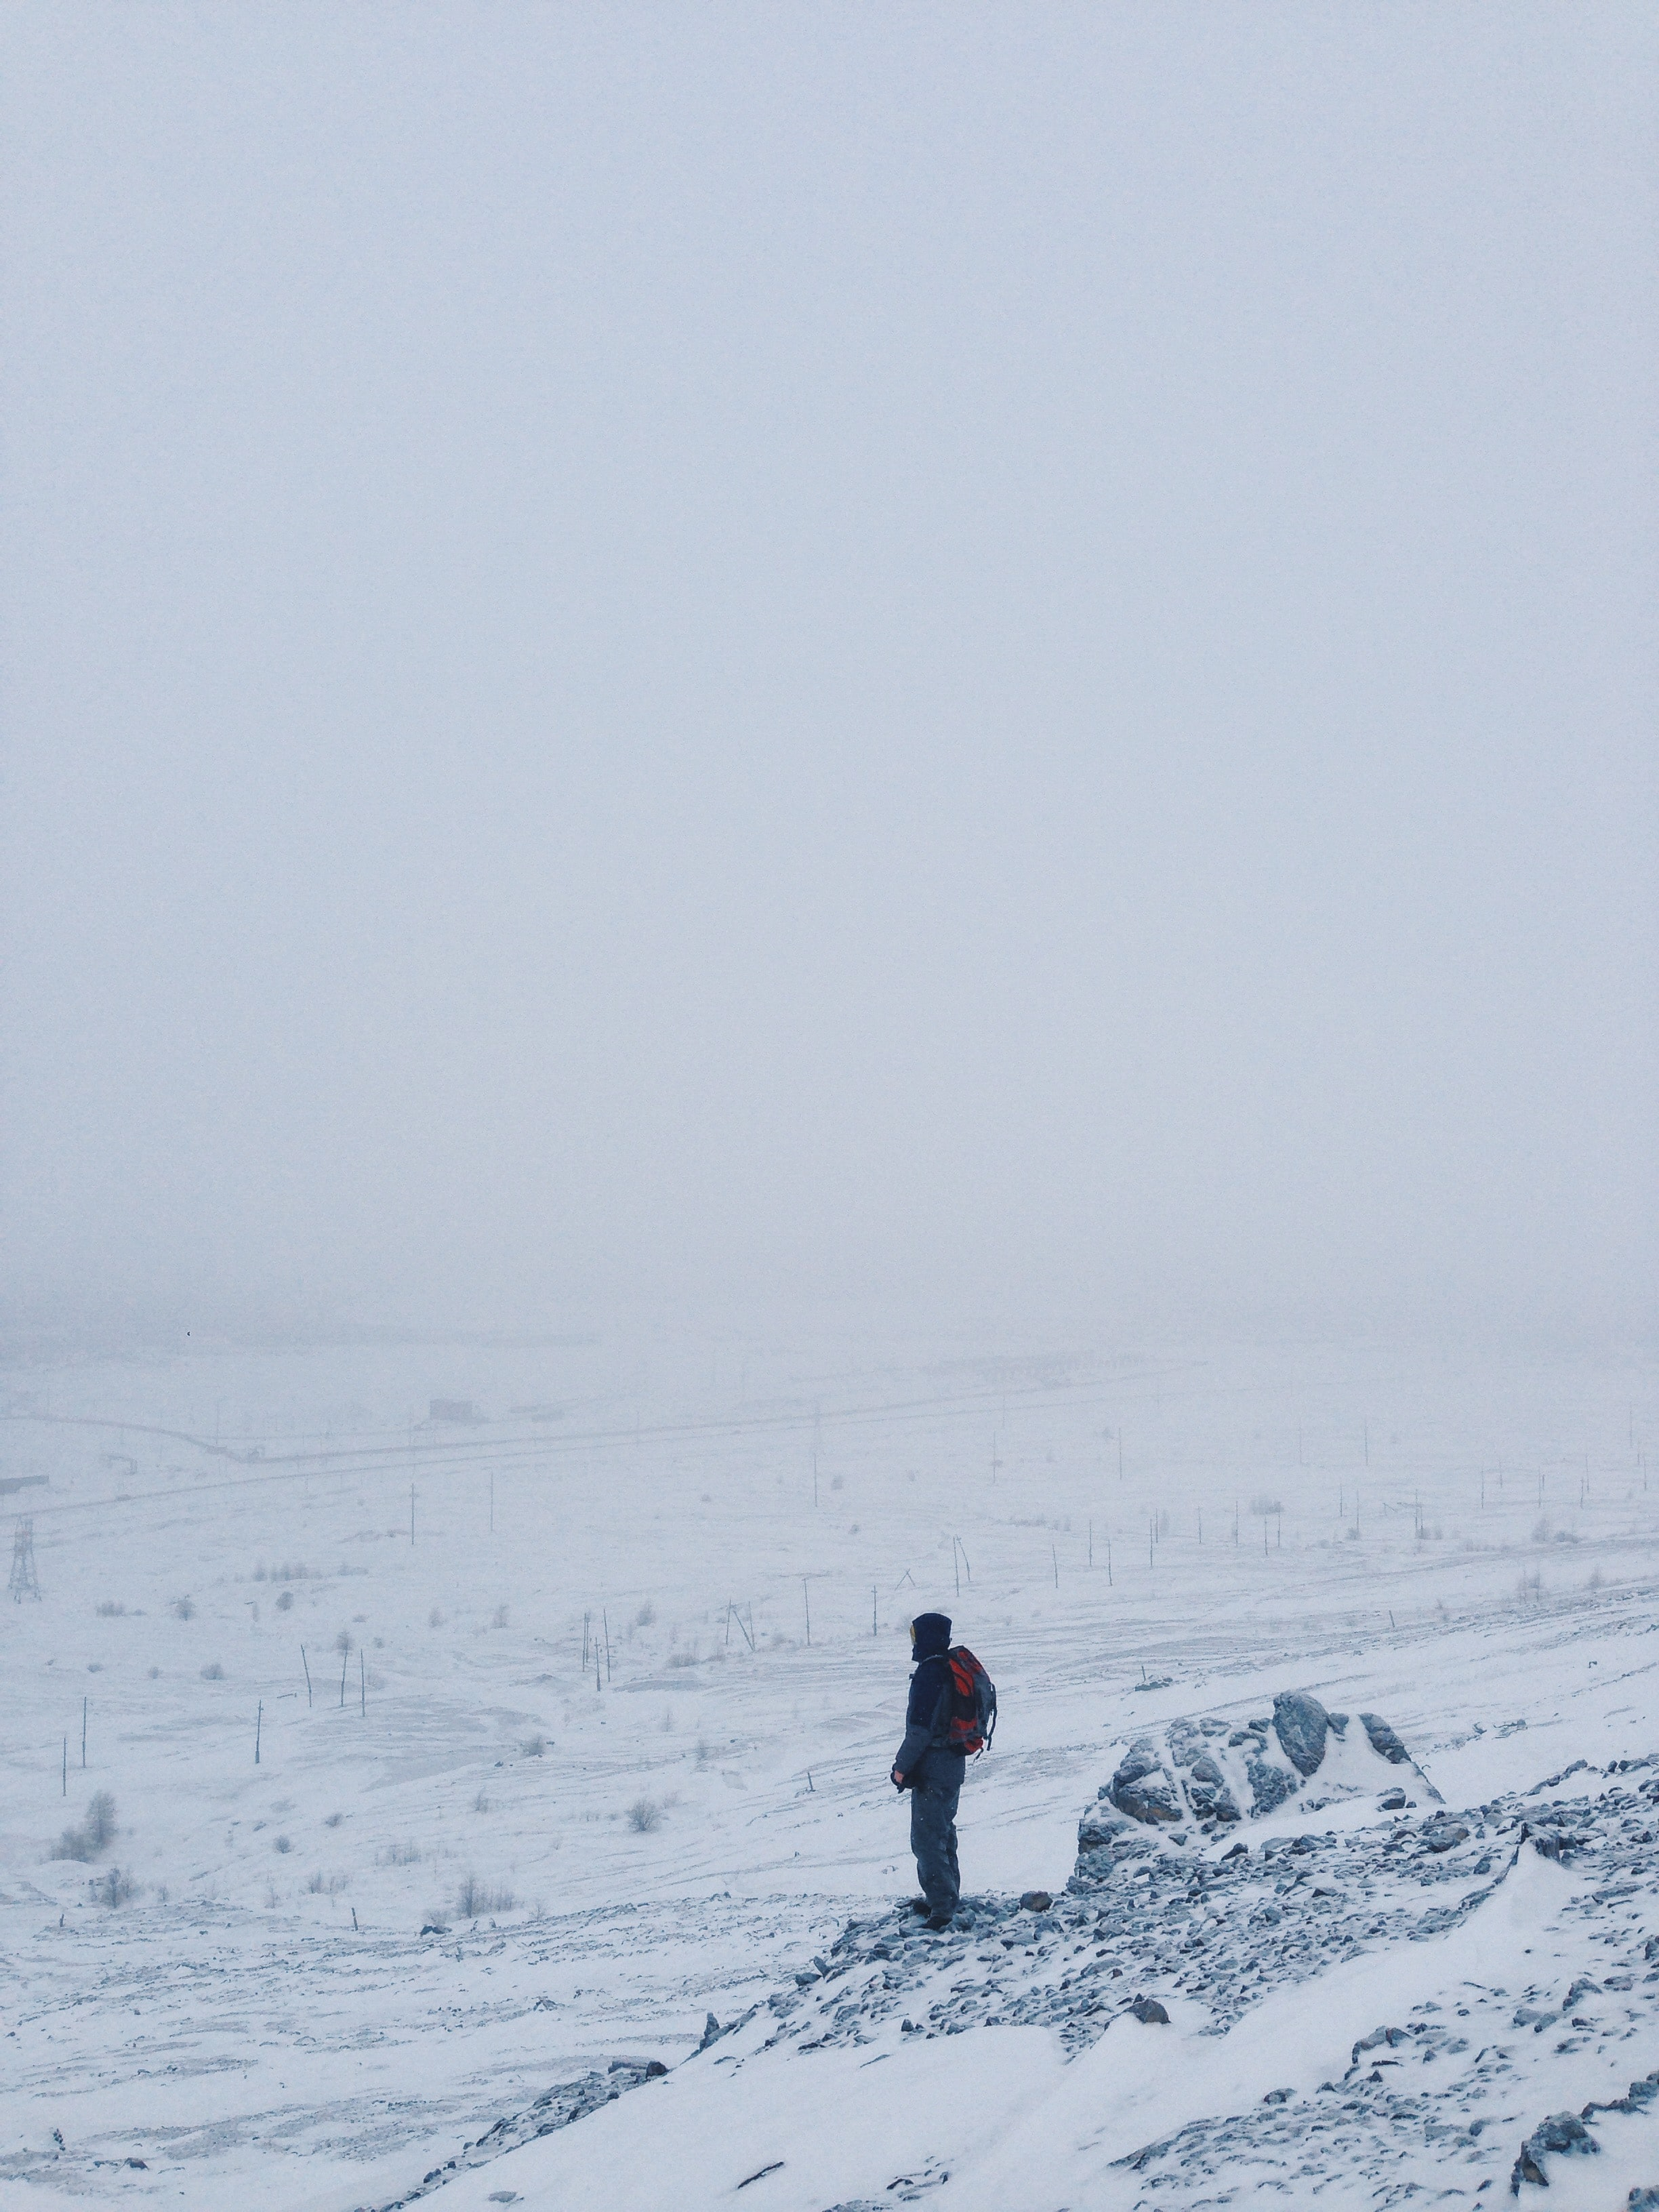 person standing on snow covered cliff